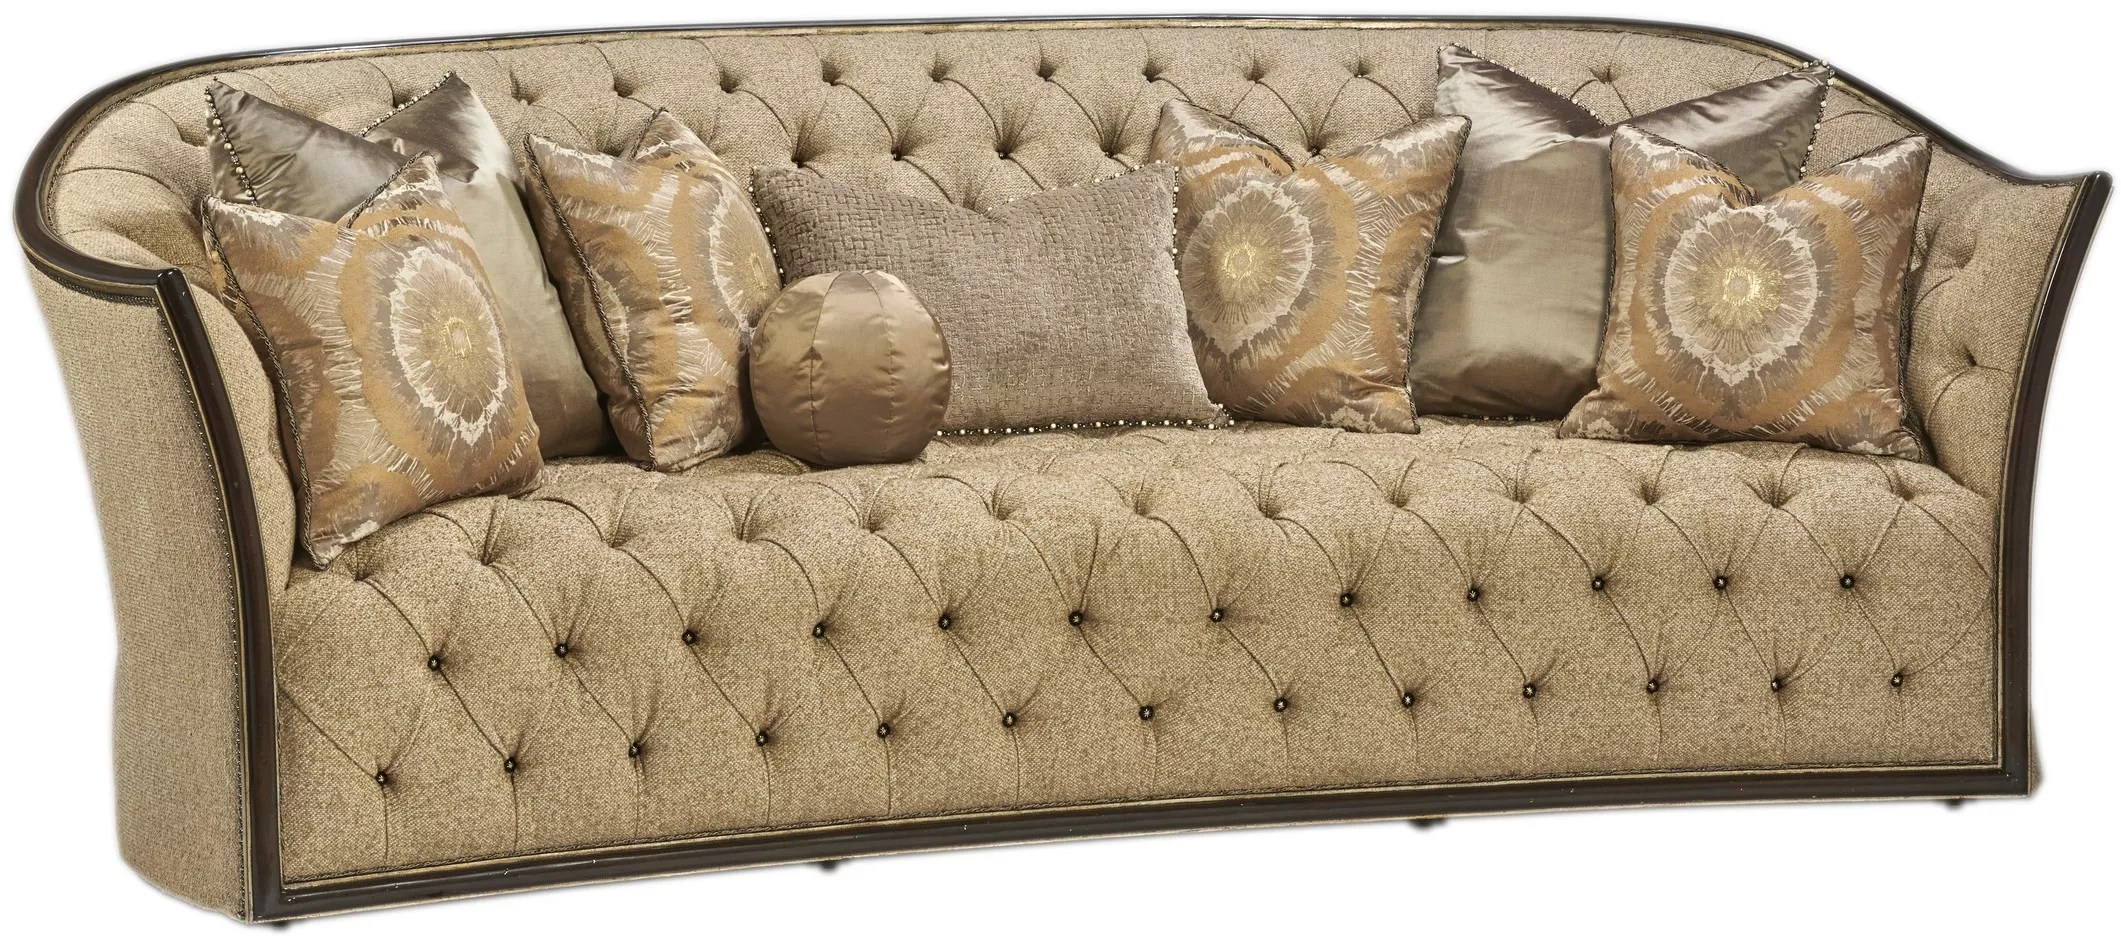 Curved Sofa Curved Sofa Covered In A Luxurious Tufted Oatmeal Fabric